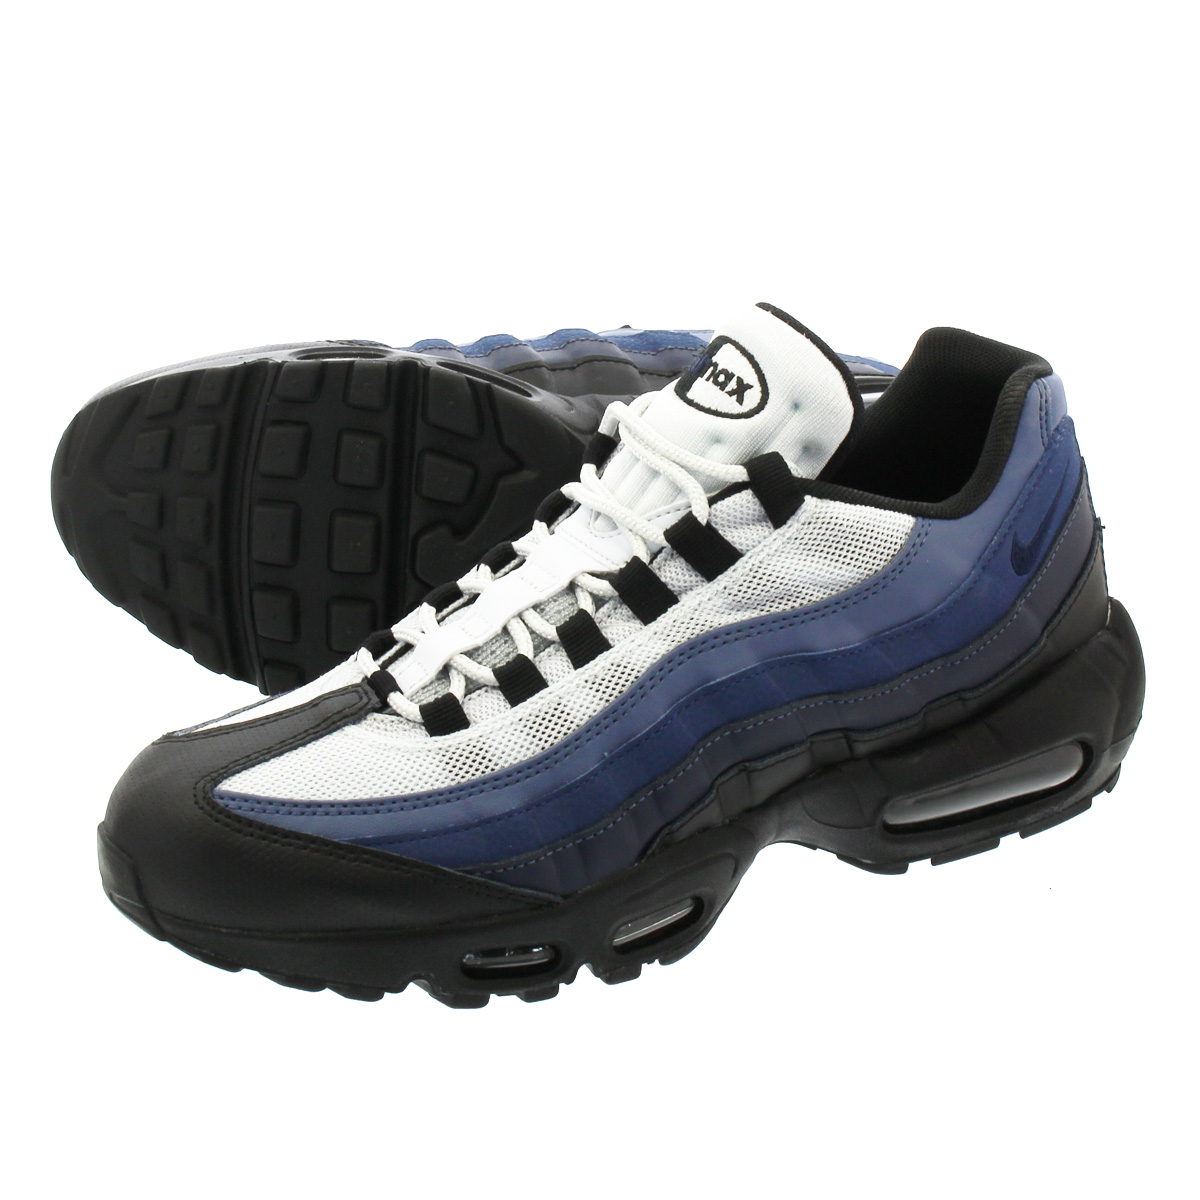 release date ab964 c4776 NIKE AIR MAX 95 ESSENTIAL Kie Ney AMAX 95 essential BLACK OBSIDIAN NAVY BLUE PURE  PLATINUM 749,766-028